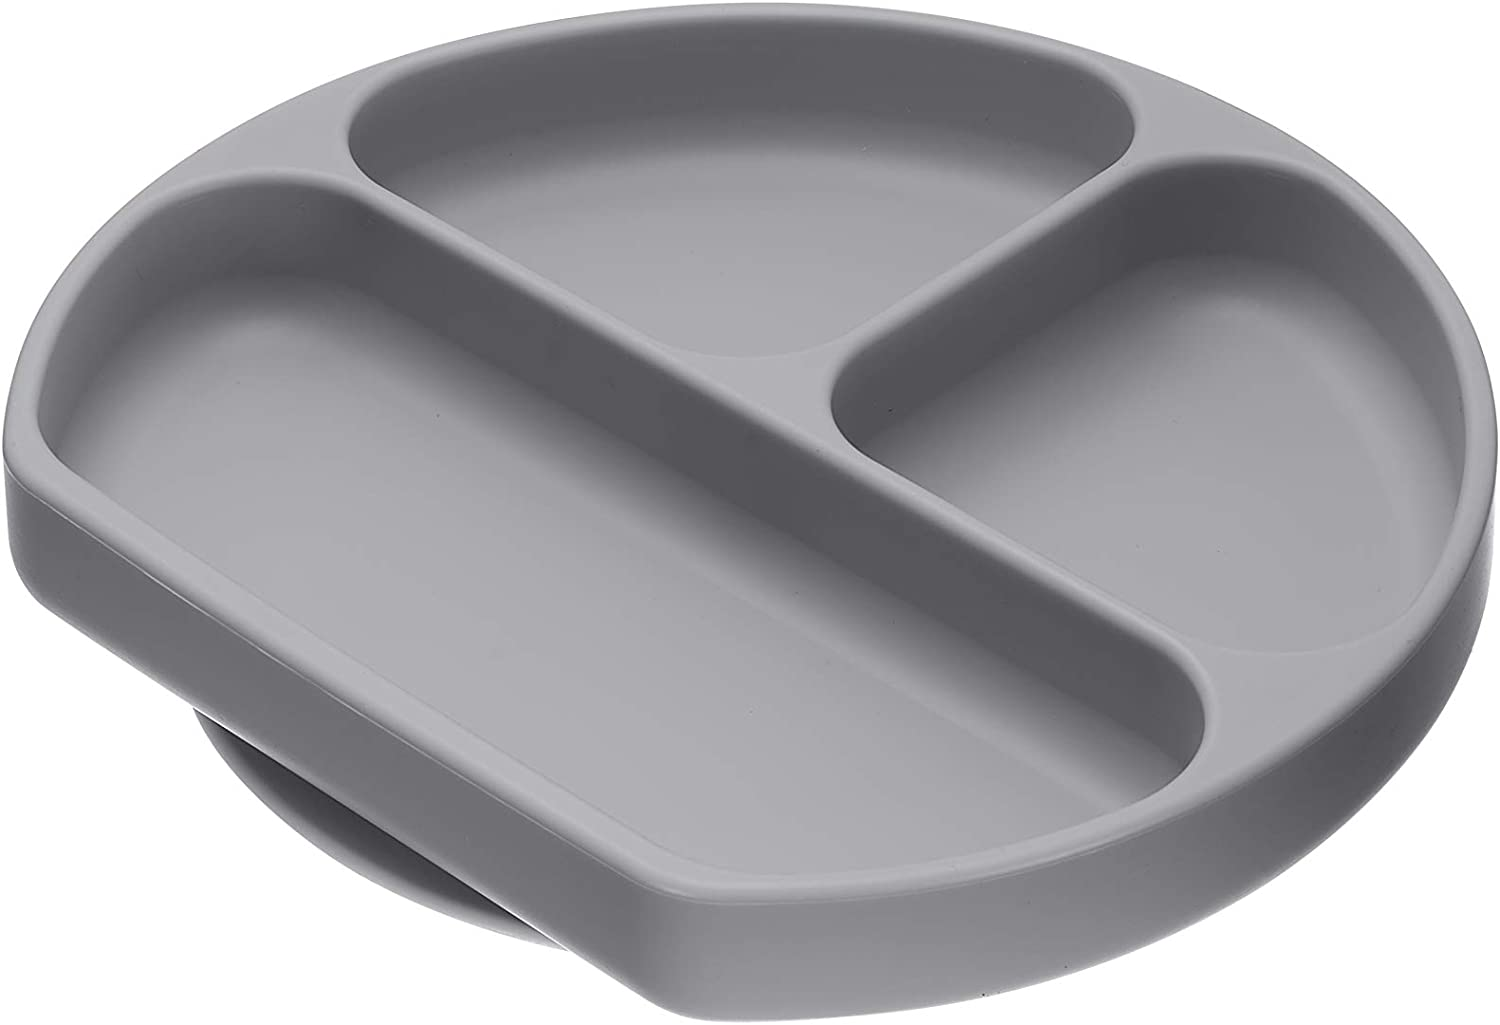 Sillyplates Silicone Grip Dish - Suction Baby Food Bowl for Placemat or Highchair Trays - Toddler Feeding Plate with 3 Portion Dividers for Picky Eaters - Microwave Oven & Dishwasher-Safe, (Gray)